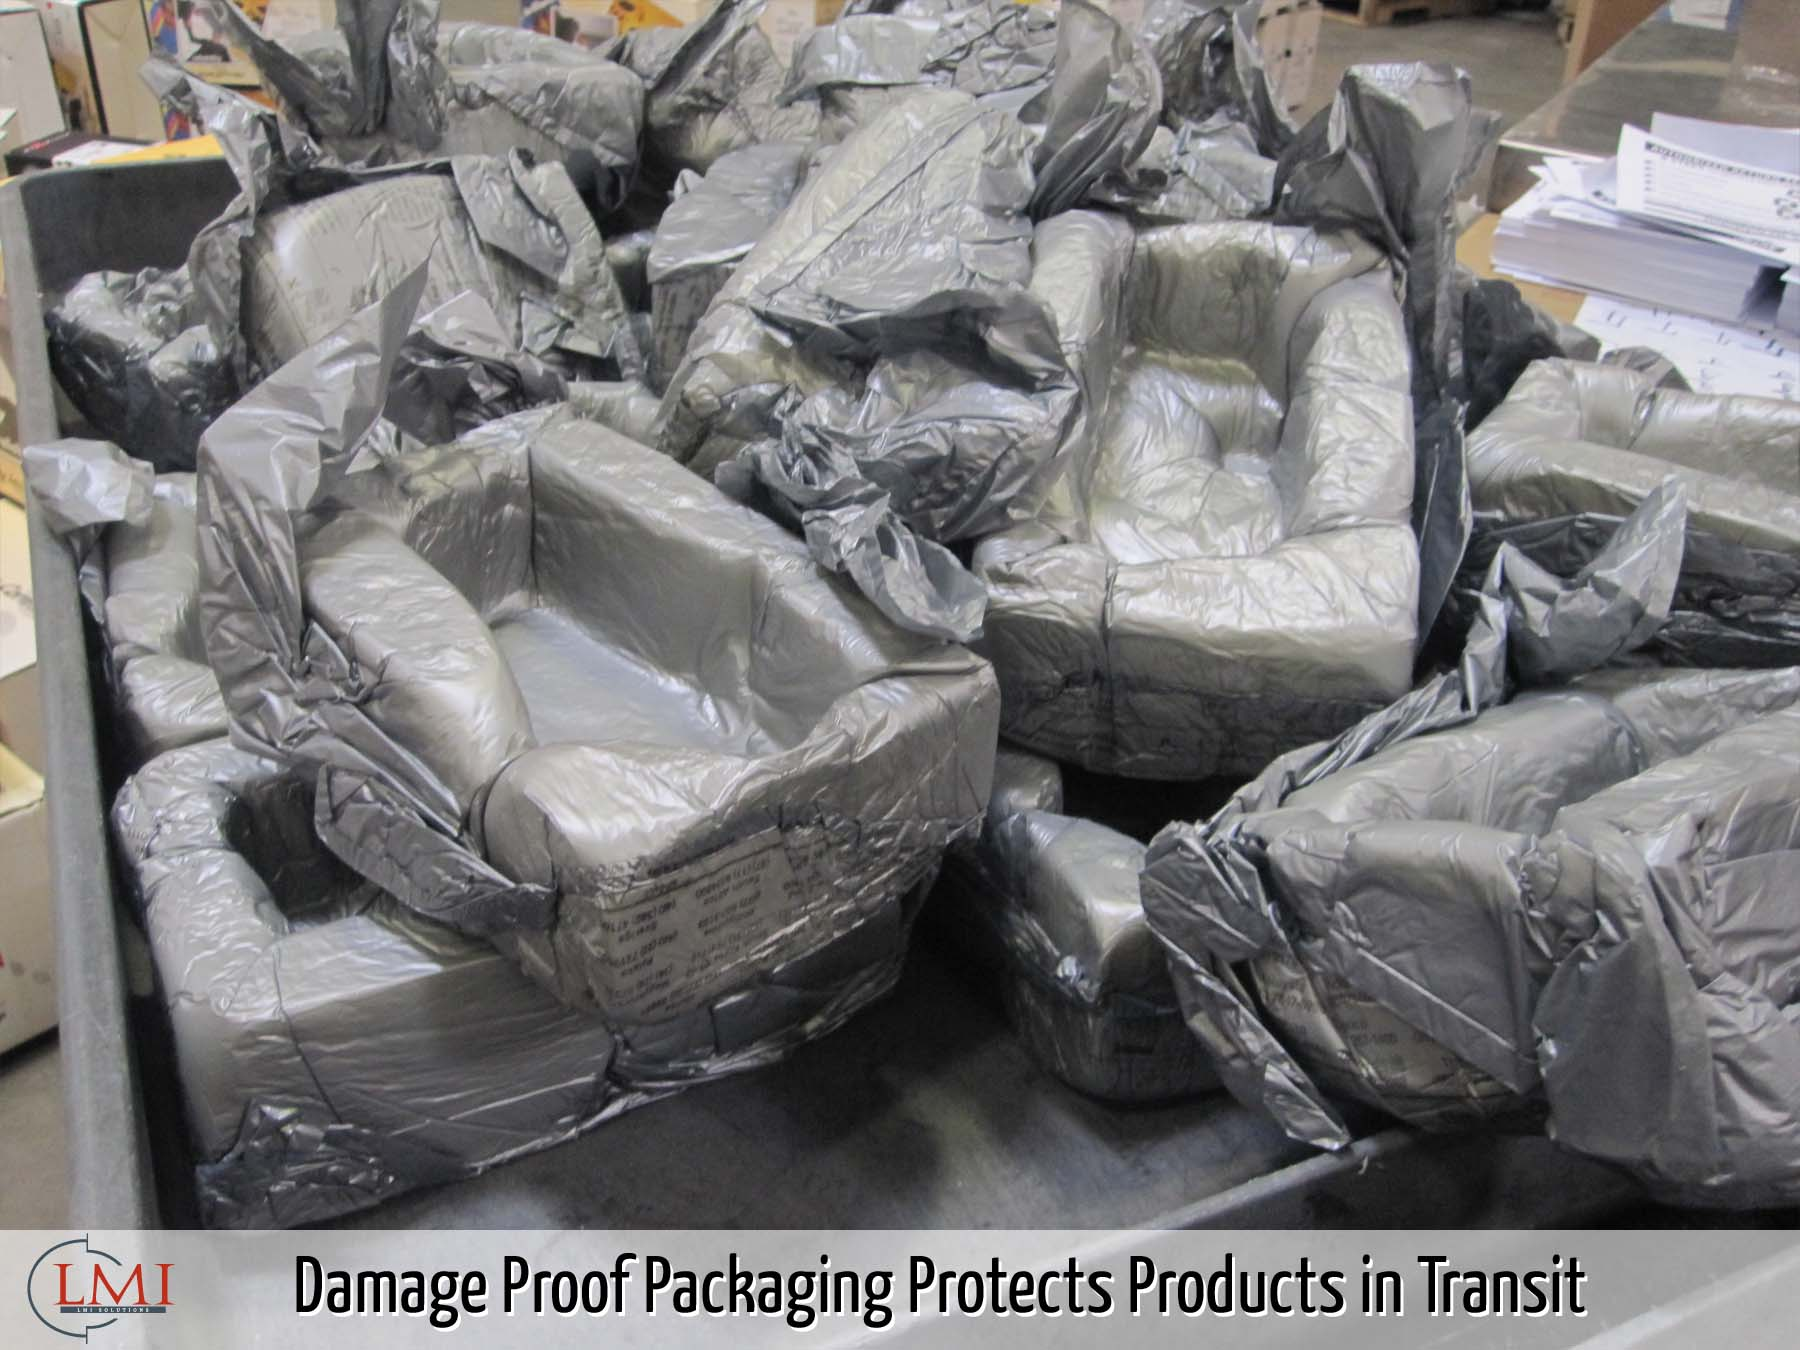 Damage Proof Packaging Protects Products in Transit